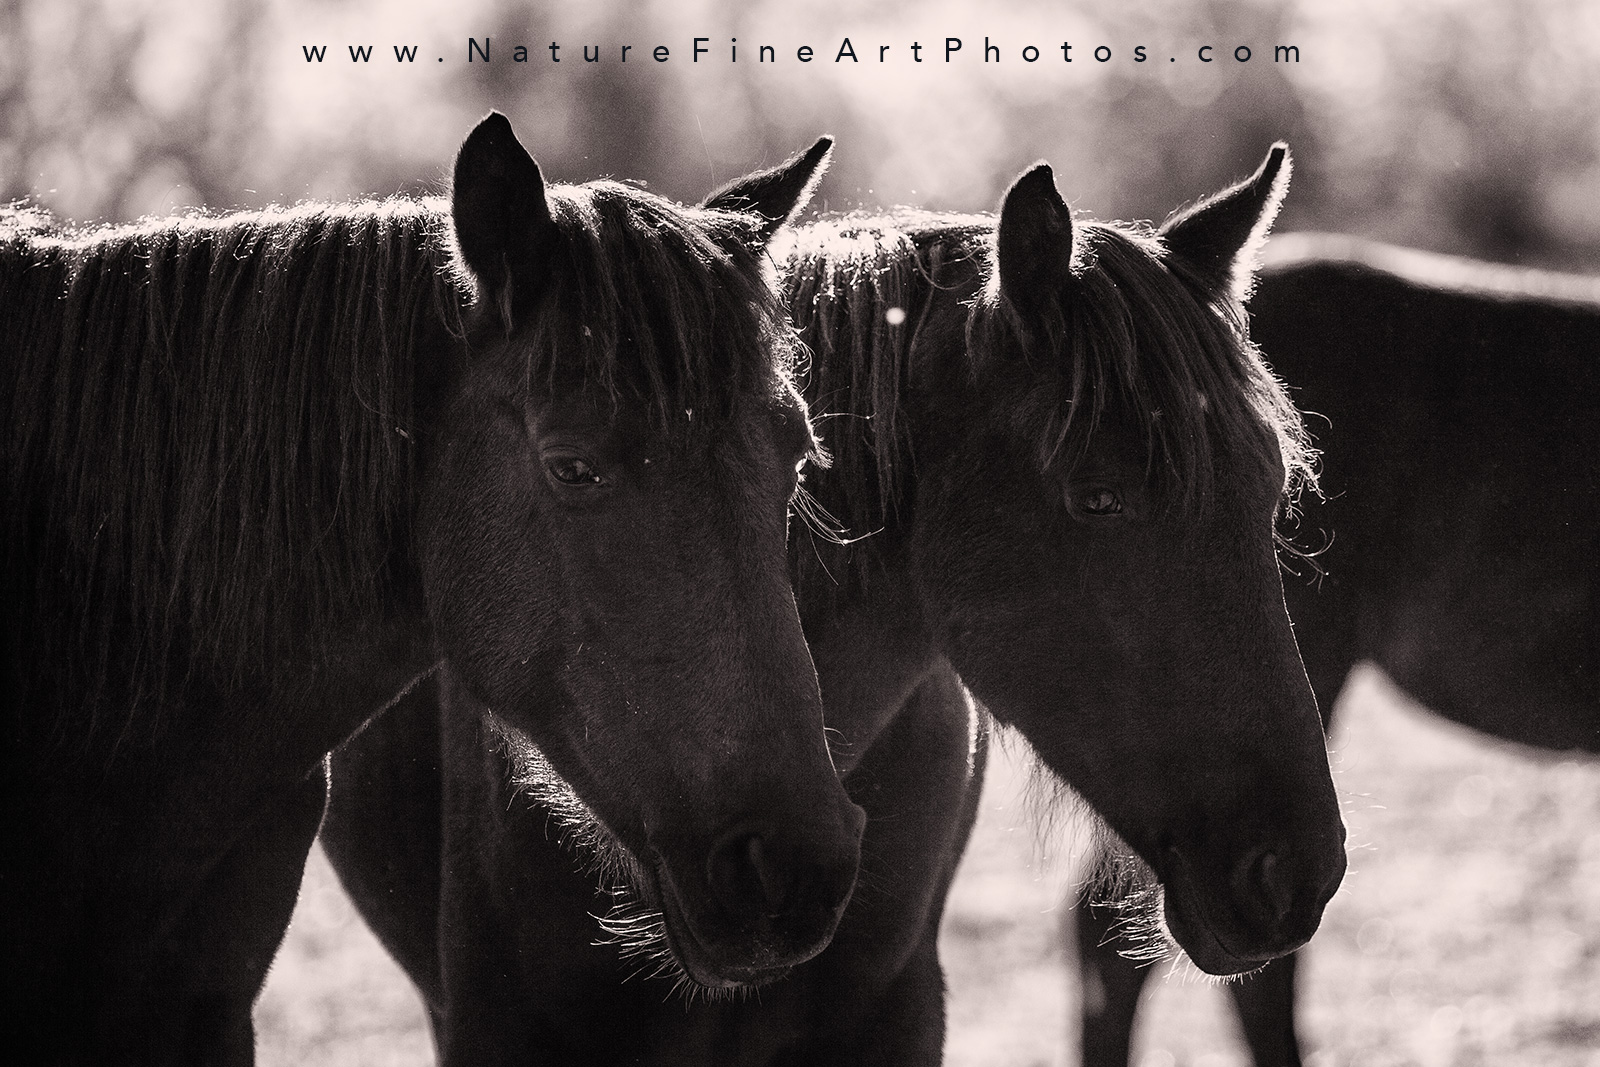 wild horses standing in harmony close up photo